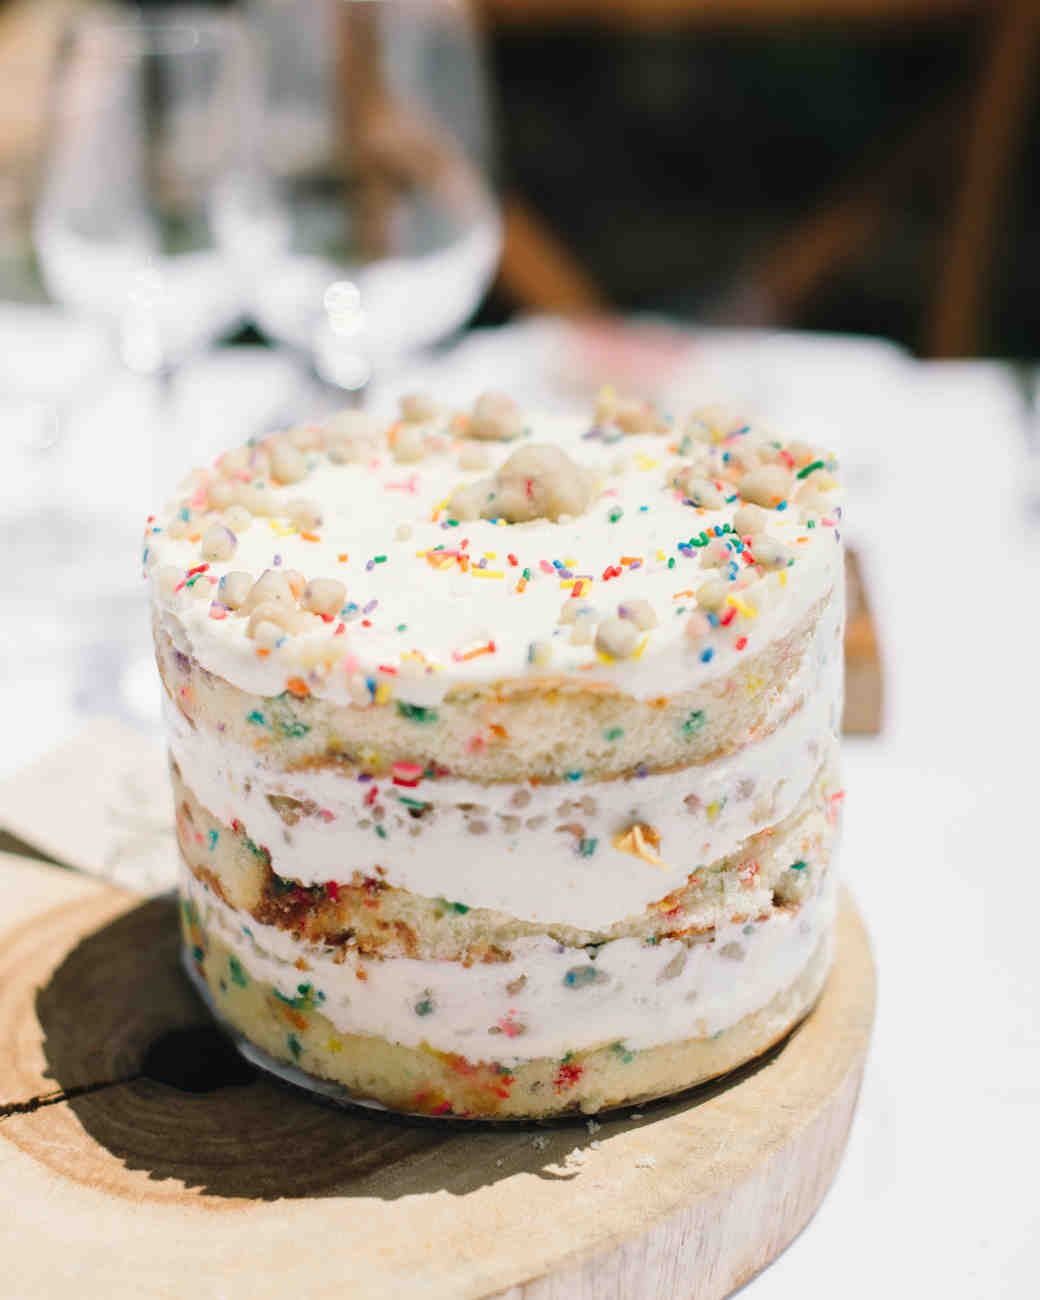 25 Vanilla Wedding Cakes That Are Anything But Boring